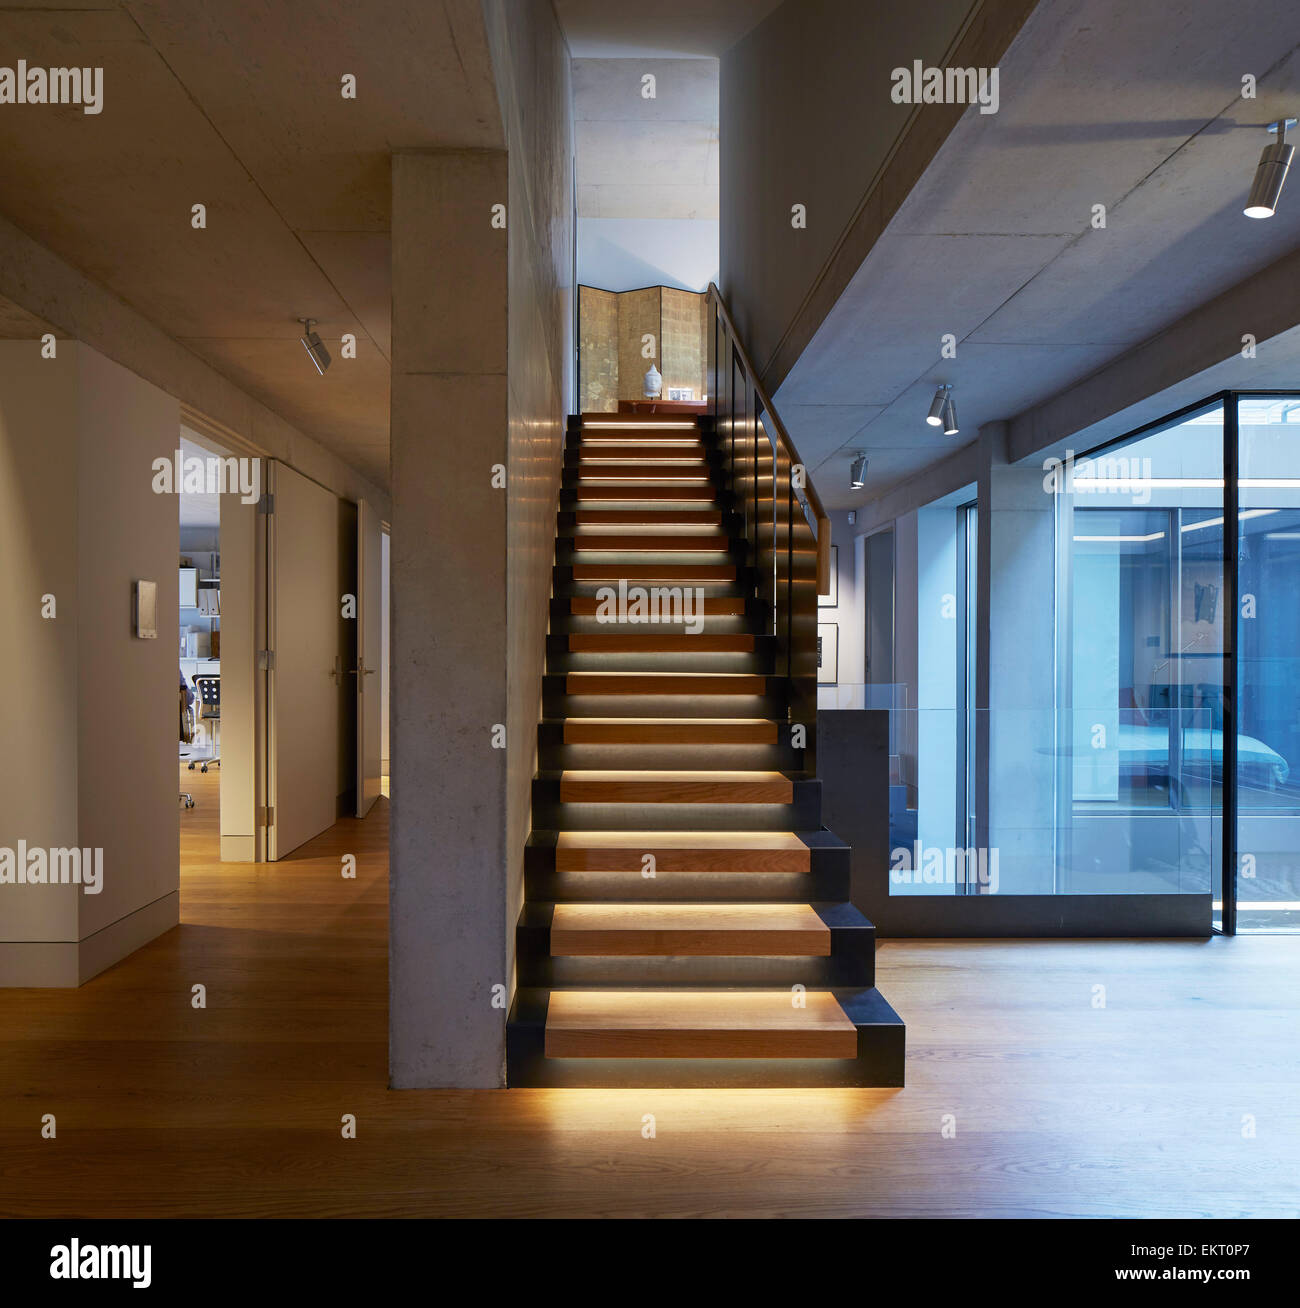 Entrance Hall With Staircase And Office Corridor. Levring House, London,  United Kingdom. Architect: Jamie Fobert Architects, 201